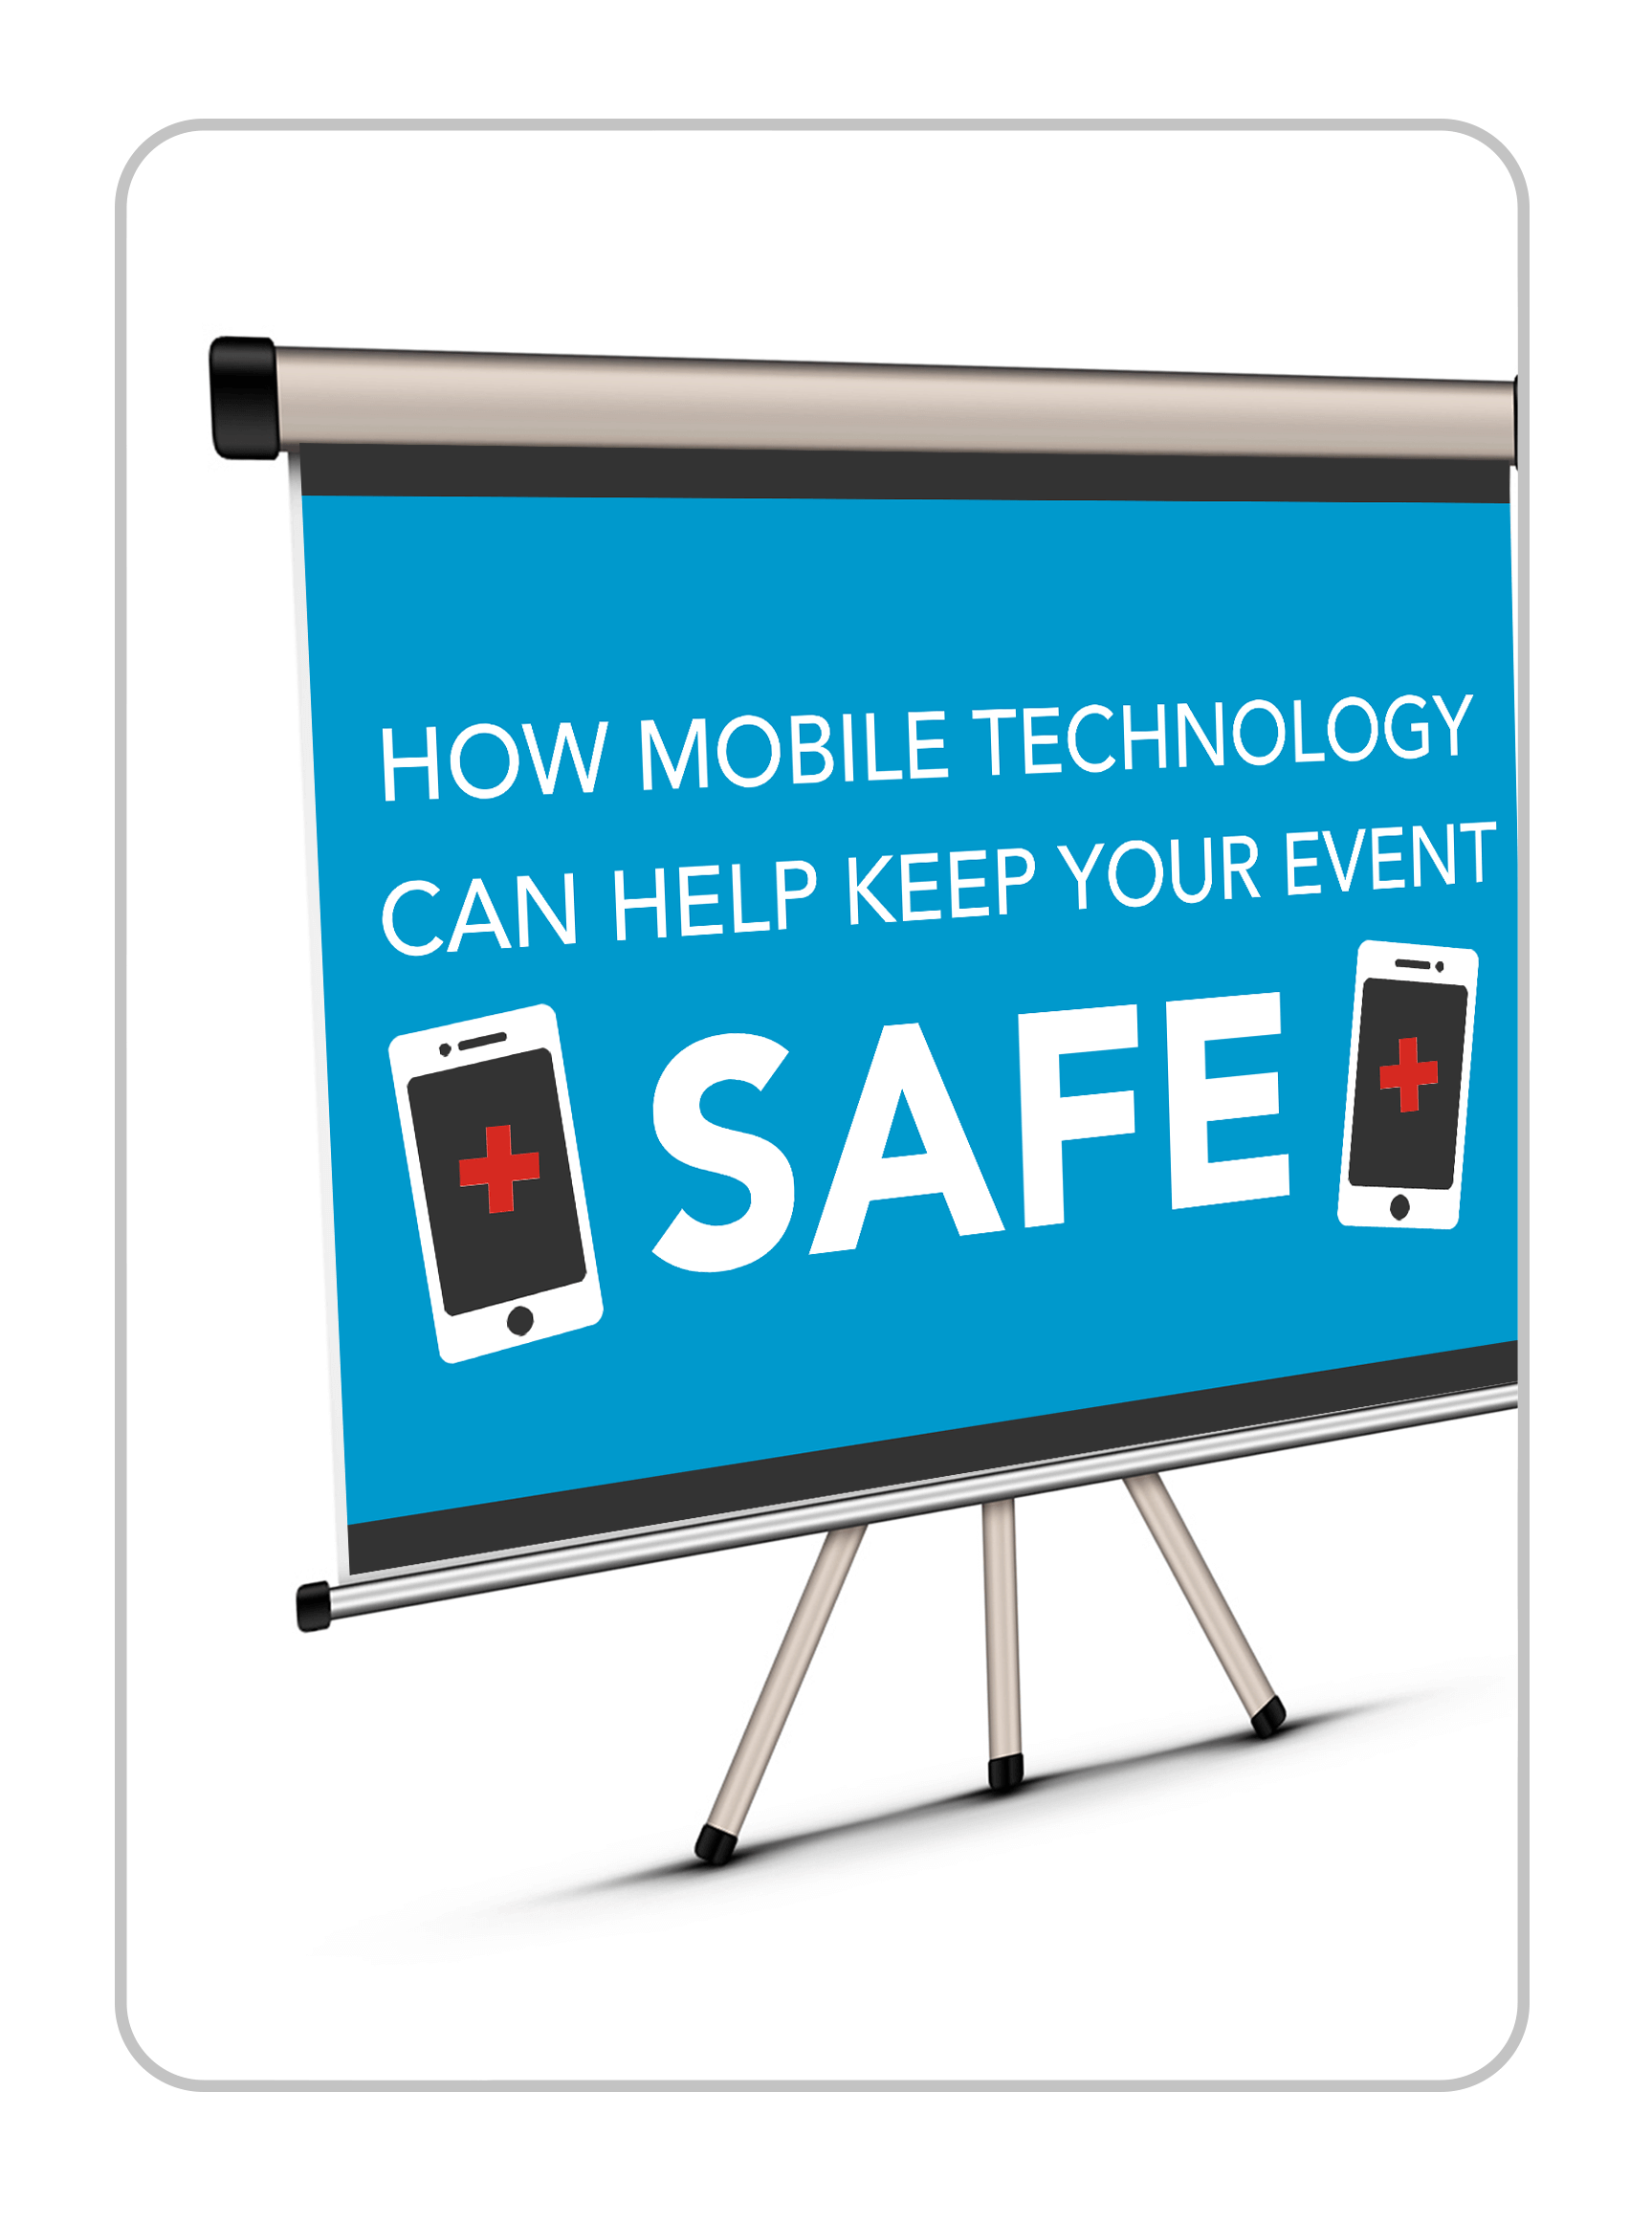 How Mobile Technology Can Help Keep Your Event Safe Slideshow